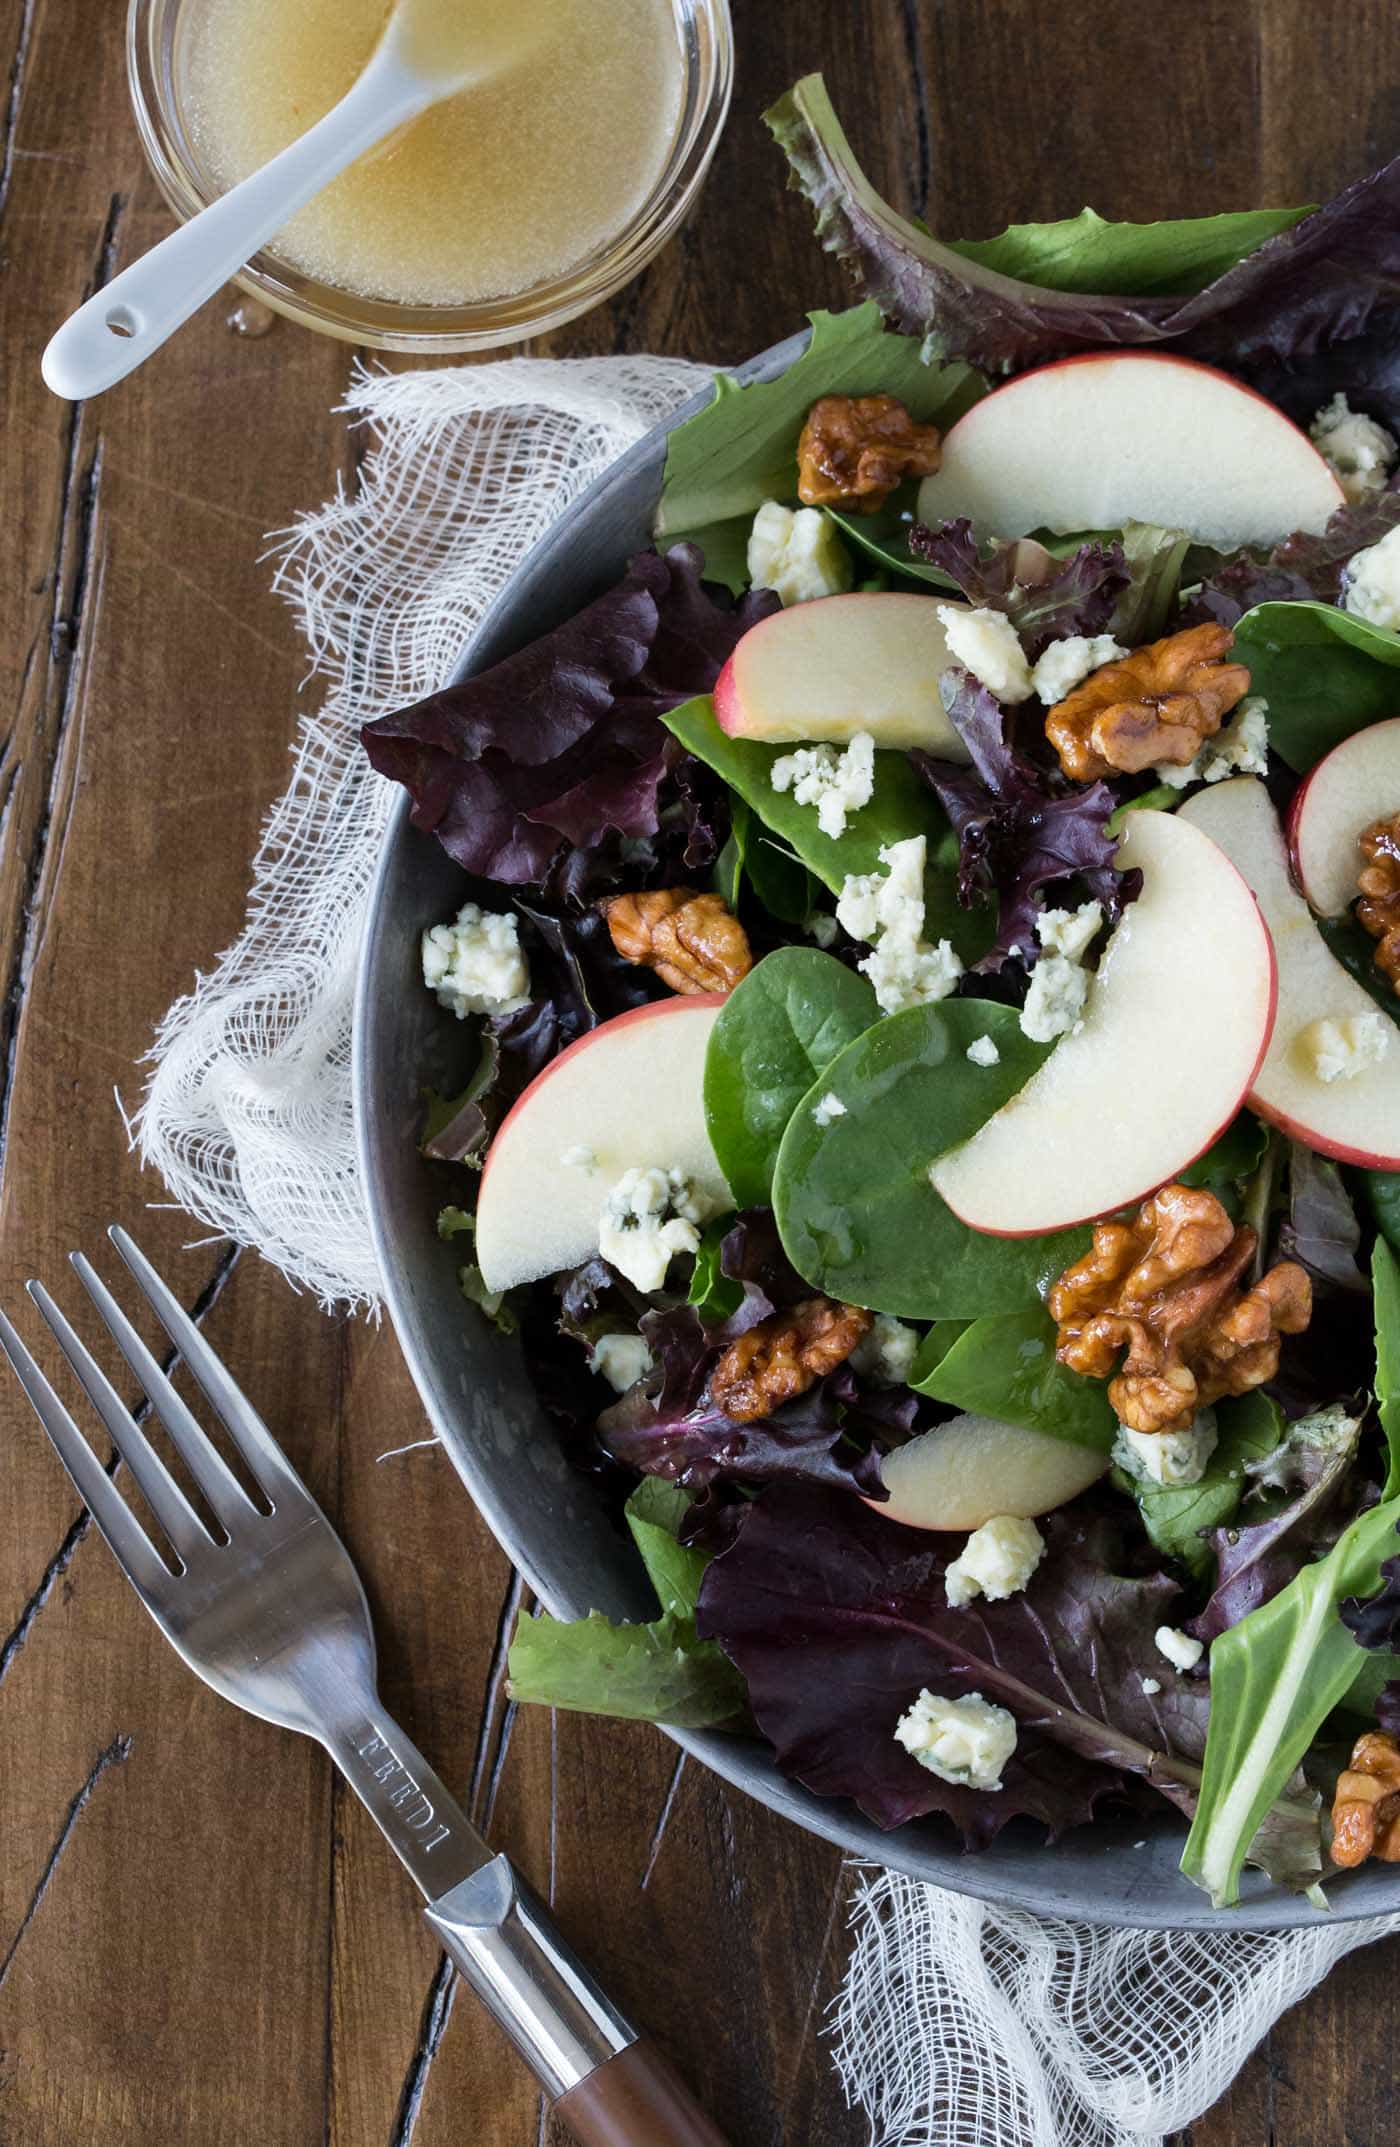 Apple, Blue Cheese and Walnut Salad recipe is a tasty complement to any menu.